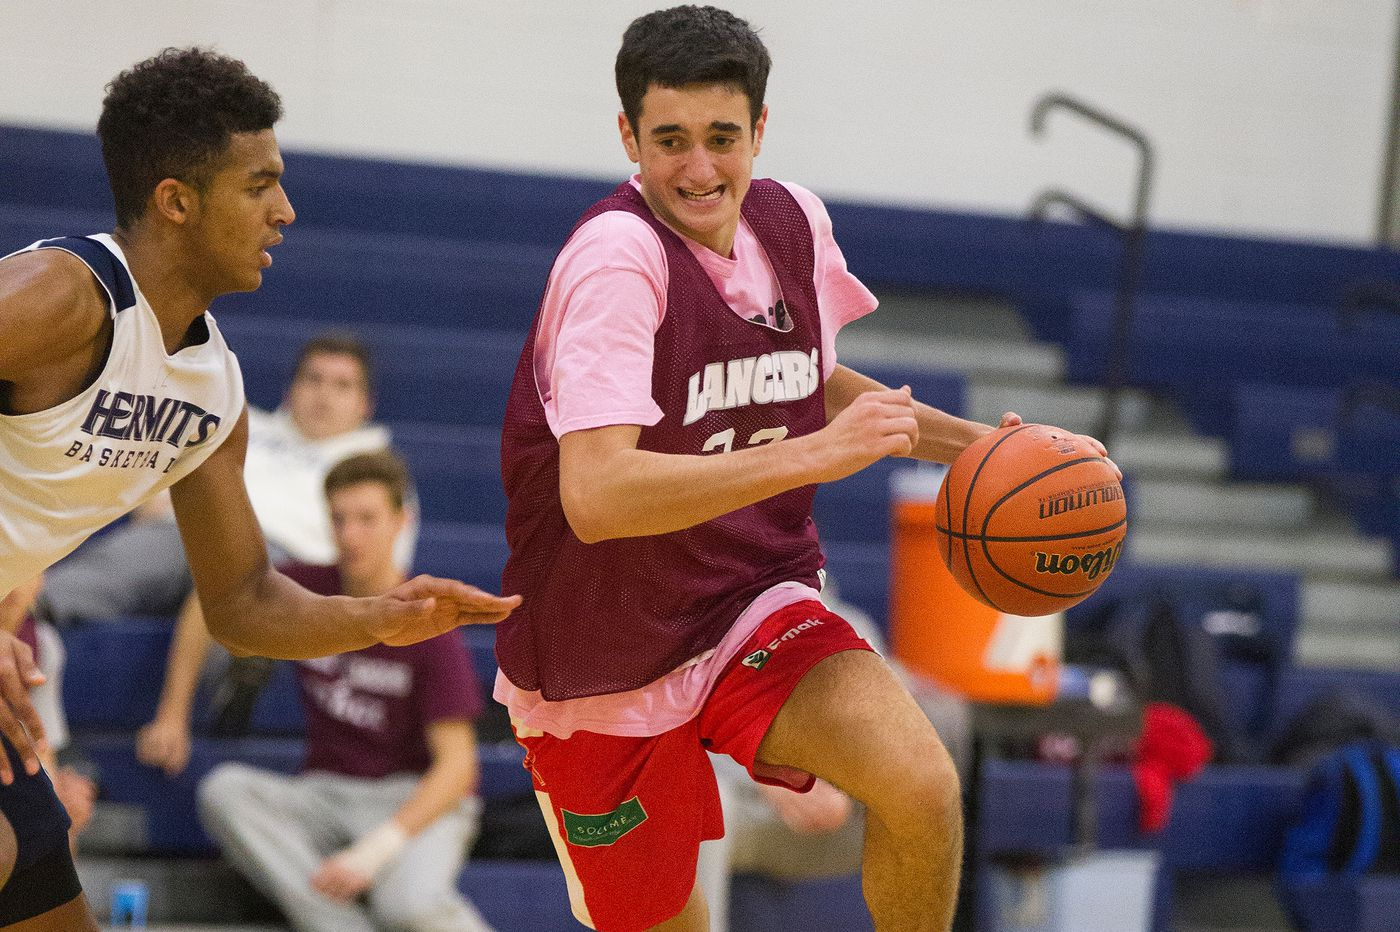 South Jersey basketball teams feature talented foreign players